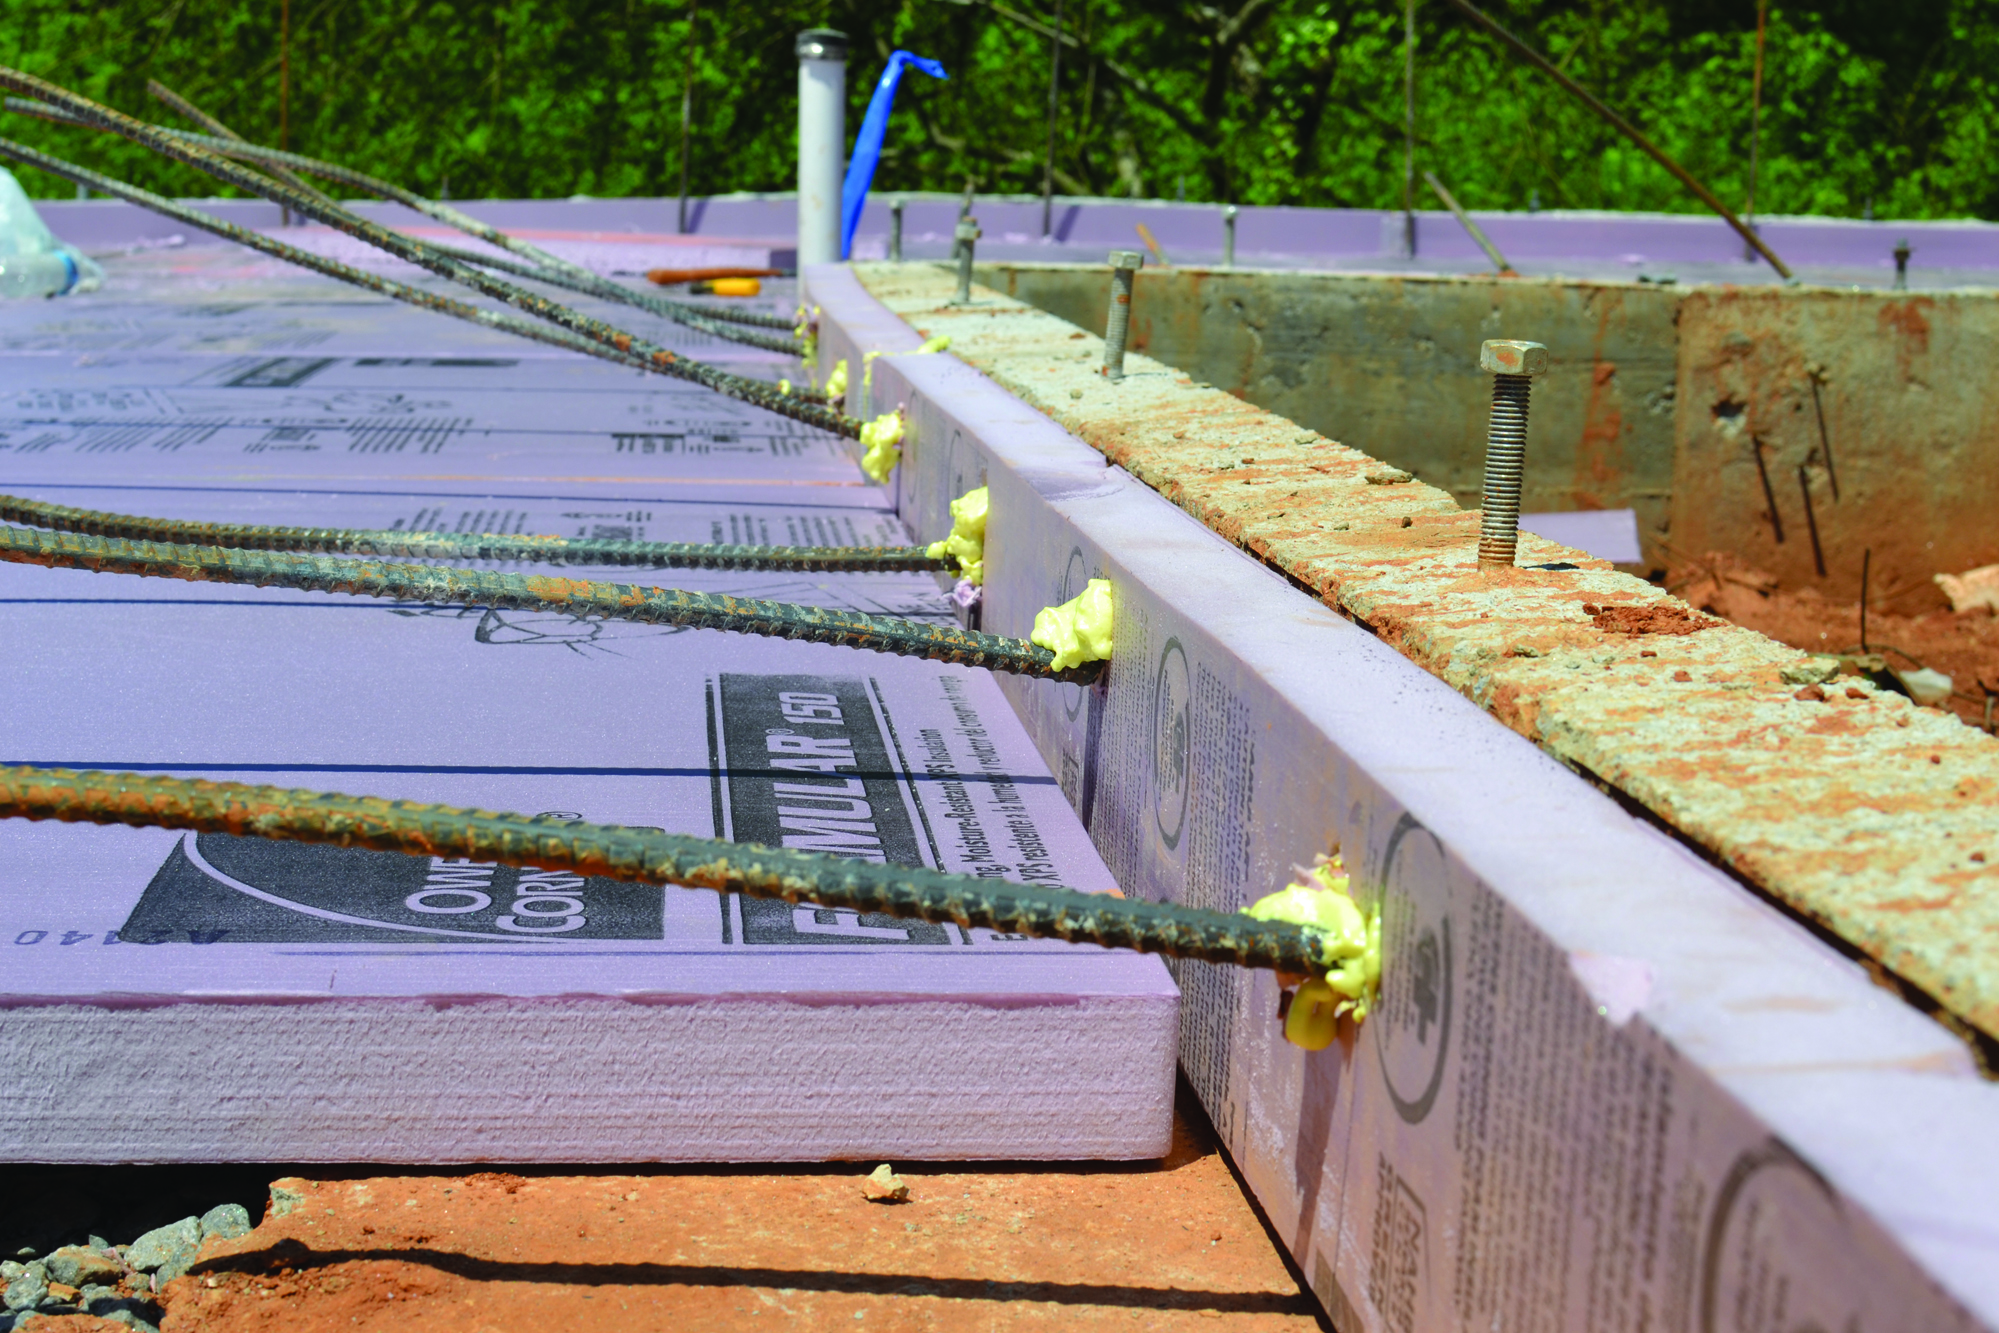 Kitchen Bath Design News An Insulated Slab For The Deep South Jlc Online Energy